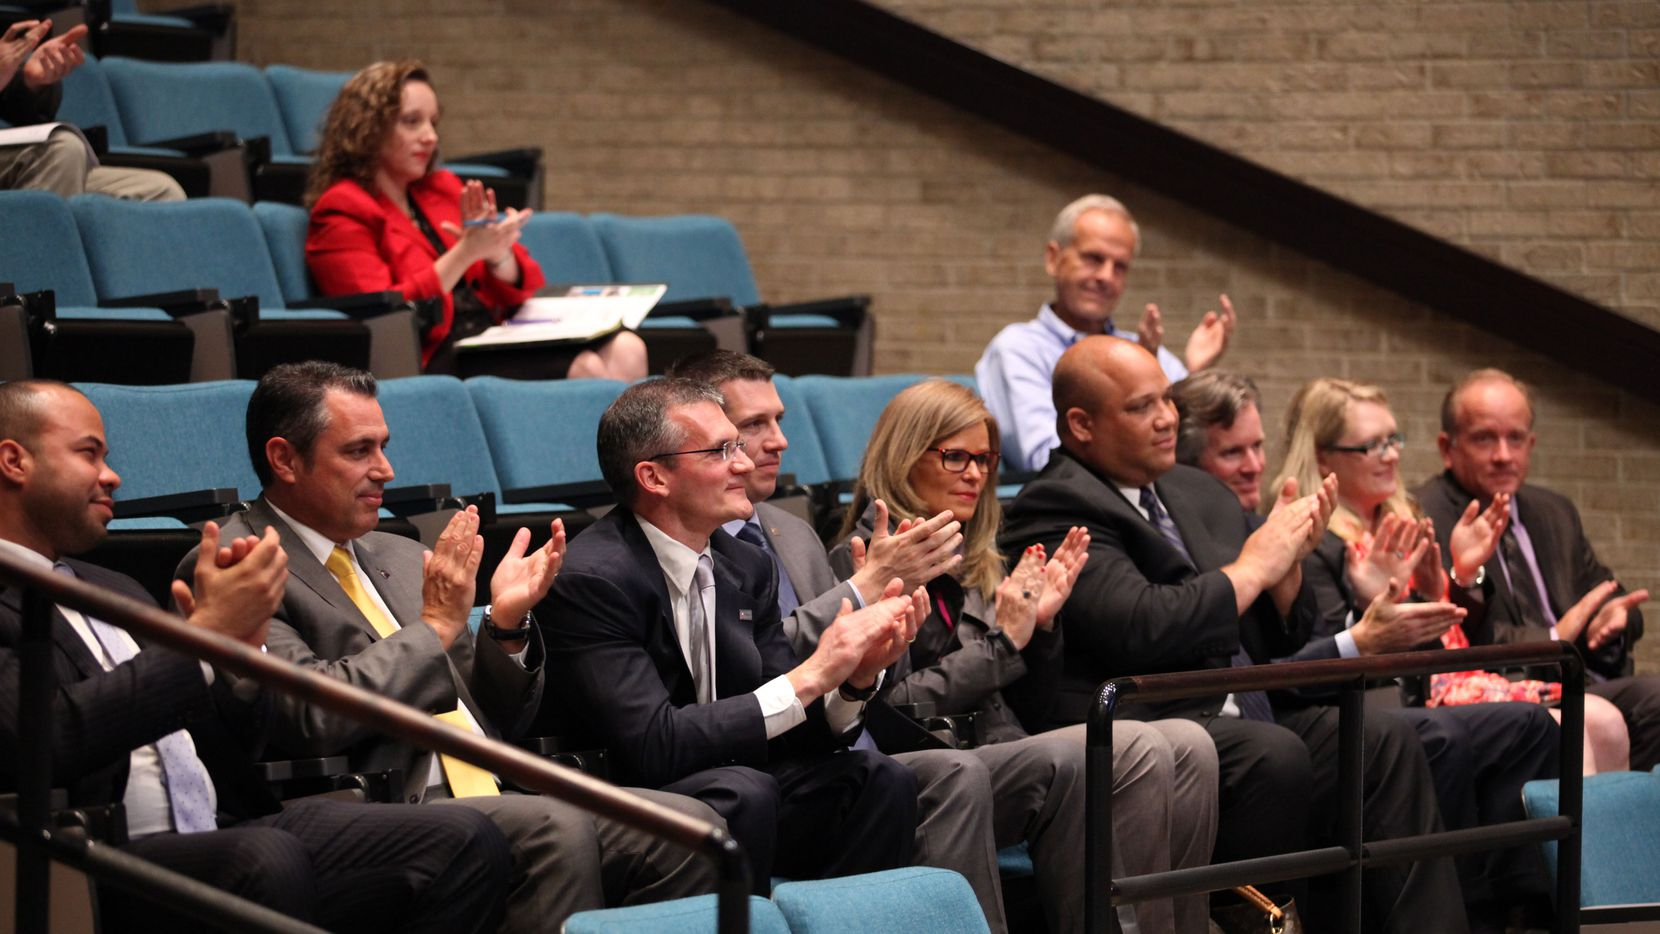 Toyota representatives, in the front row, applauded after a vote for an economic incentive package for the company during a session of the Plano City Council on Monday.